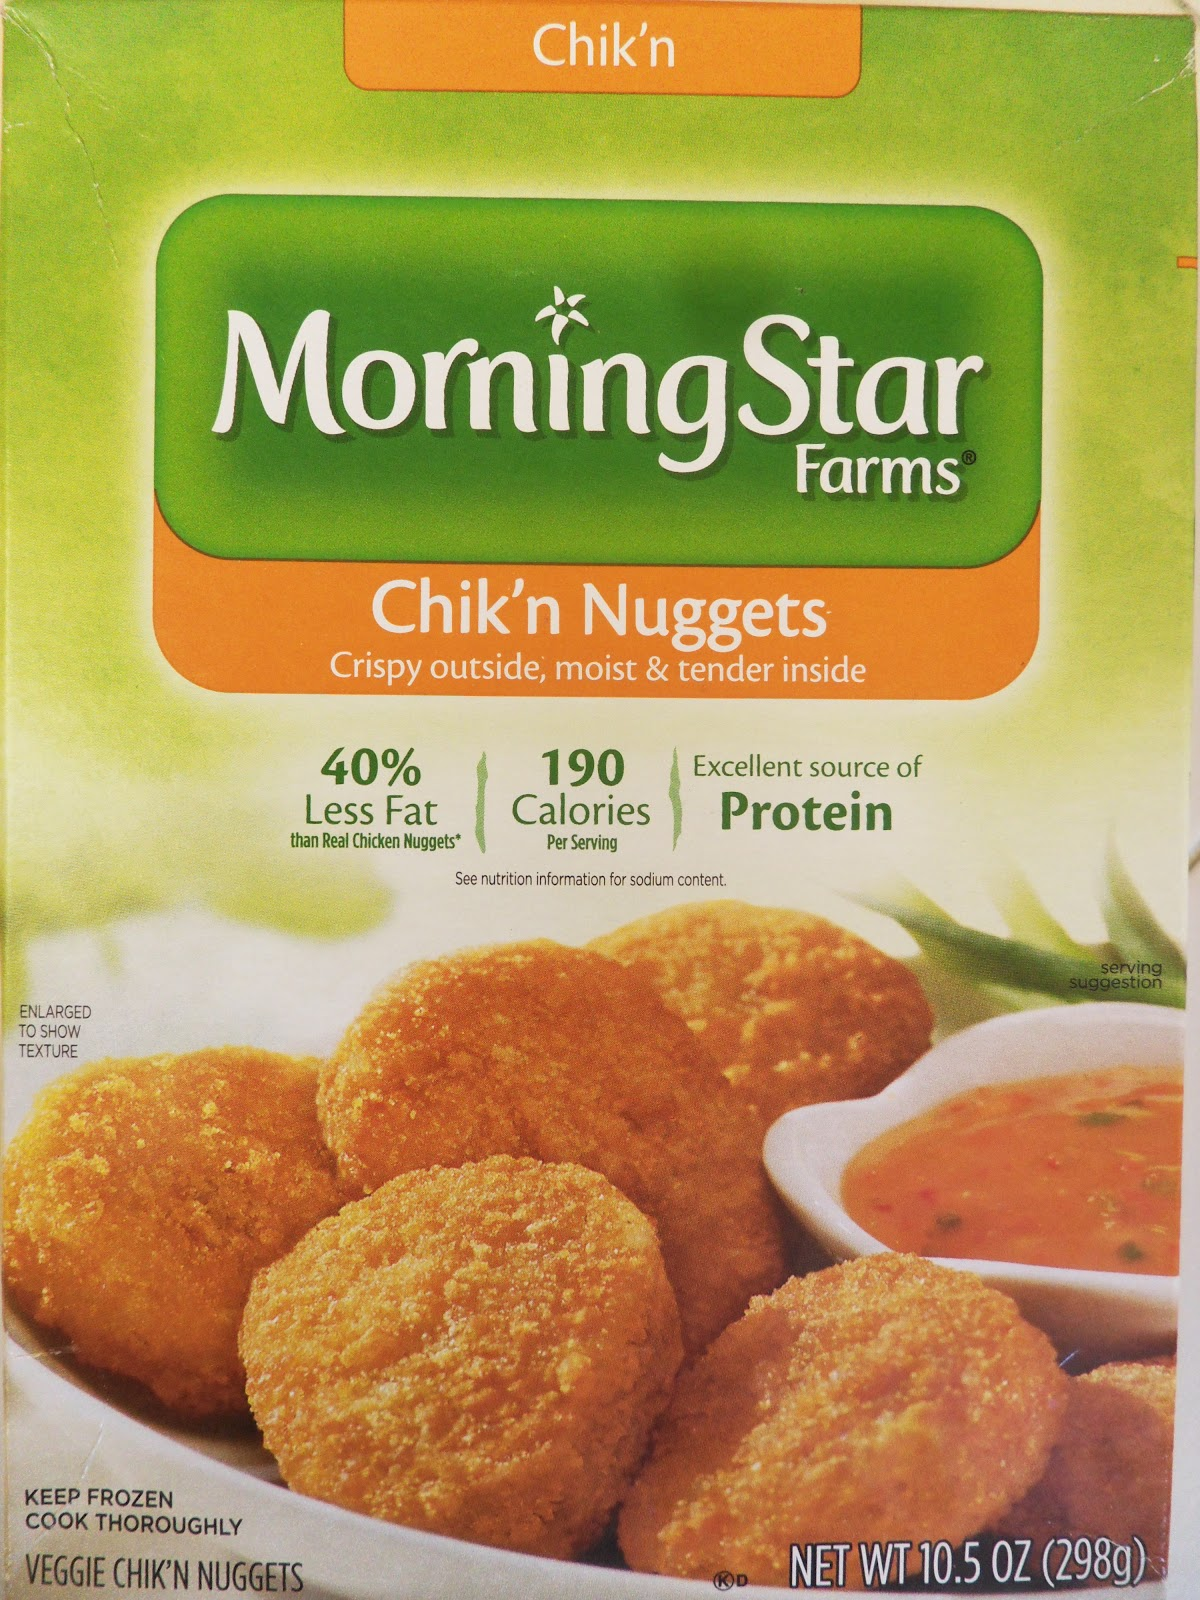 Morning star food likewise Best Super Bowl Appetizers as well Chili Corn Dog Casserole Recipe besides School Of Yesteryear Taught Fed Corrected Directed as well ments. on mini corn dogs oven